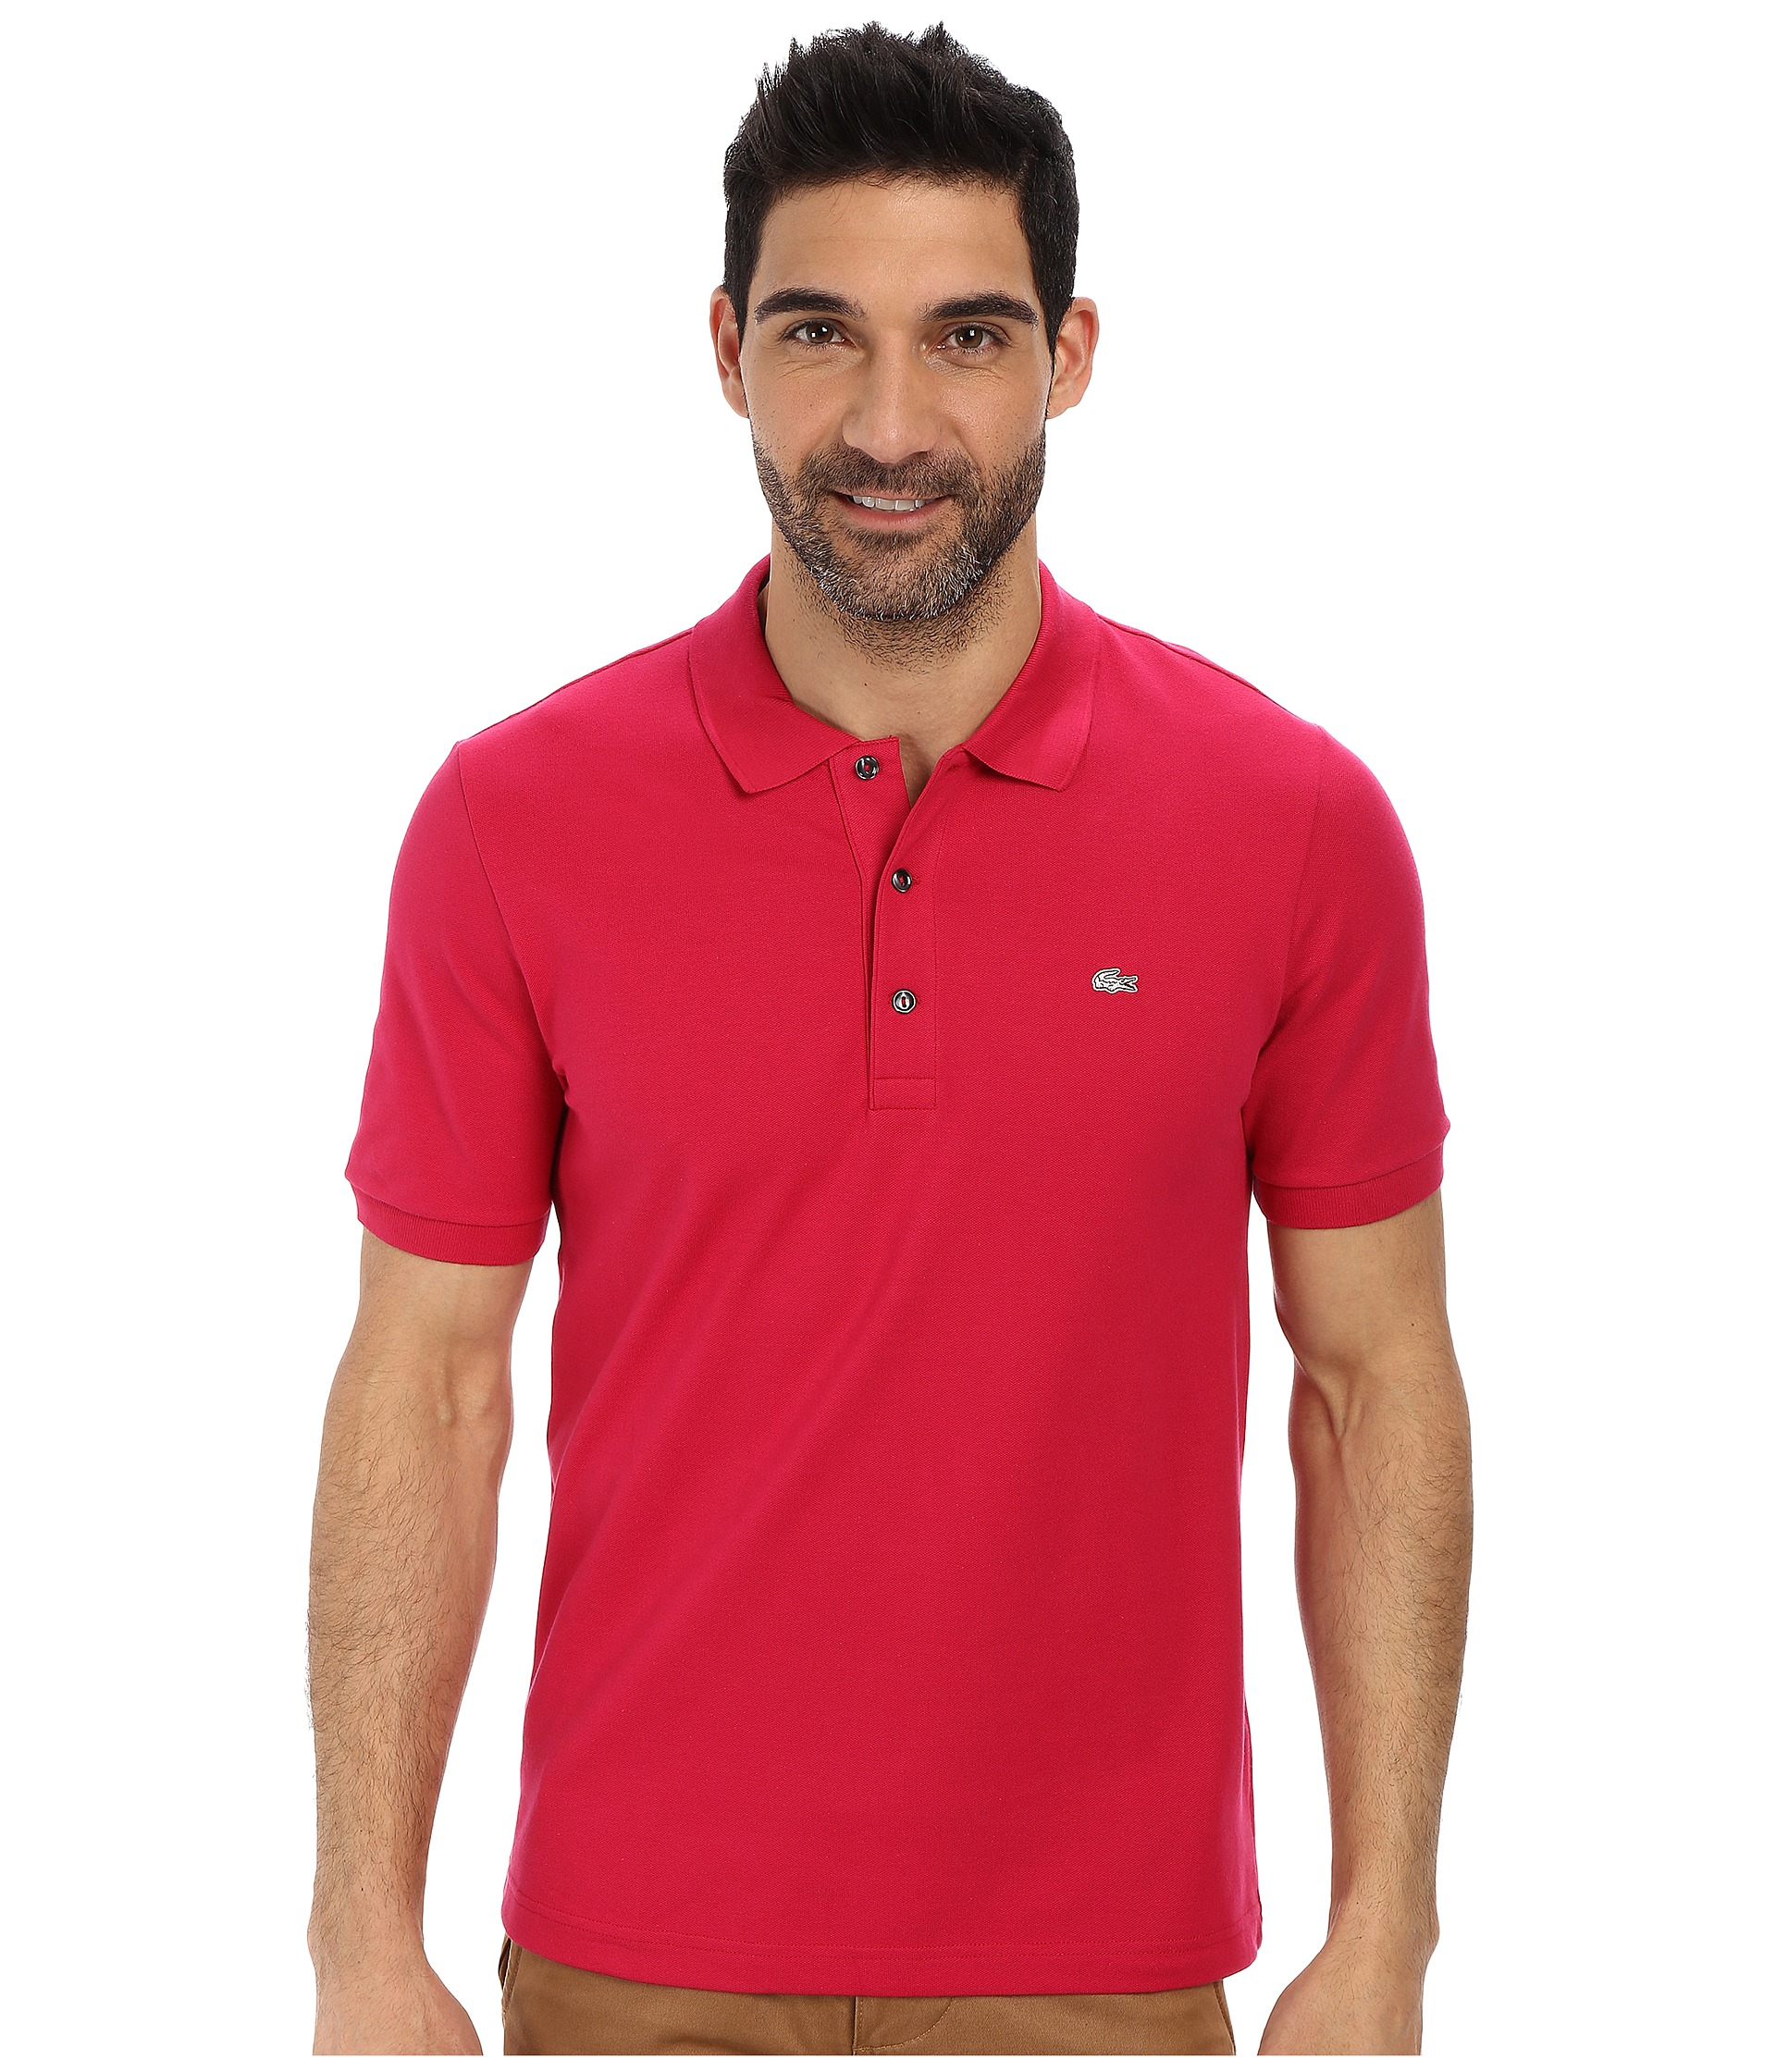 8142581e9 Lacoste Premium Short Sleeve Slim Fit Stretch Pique Polo Shirt in ...